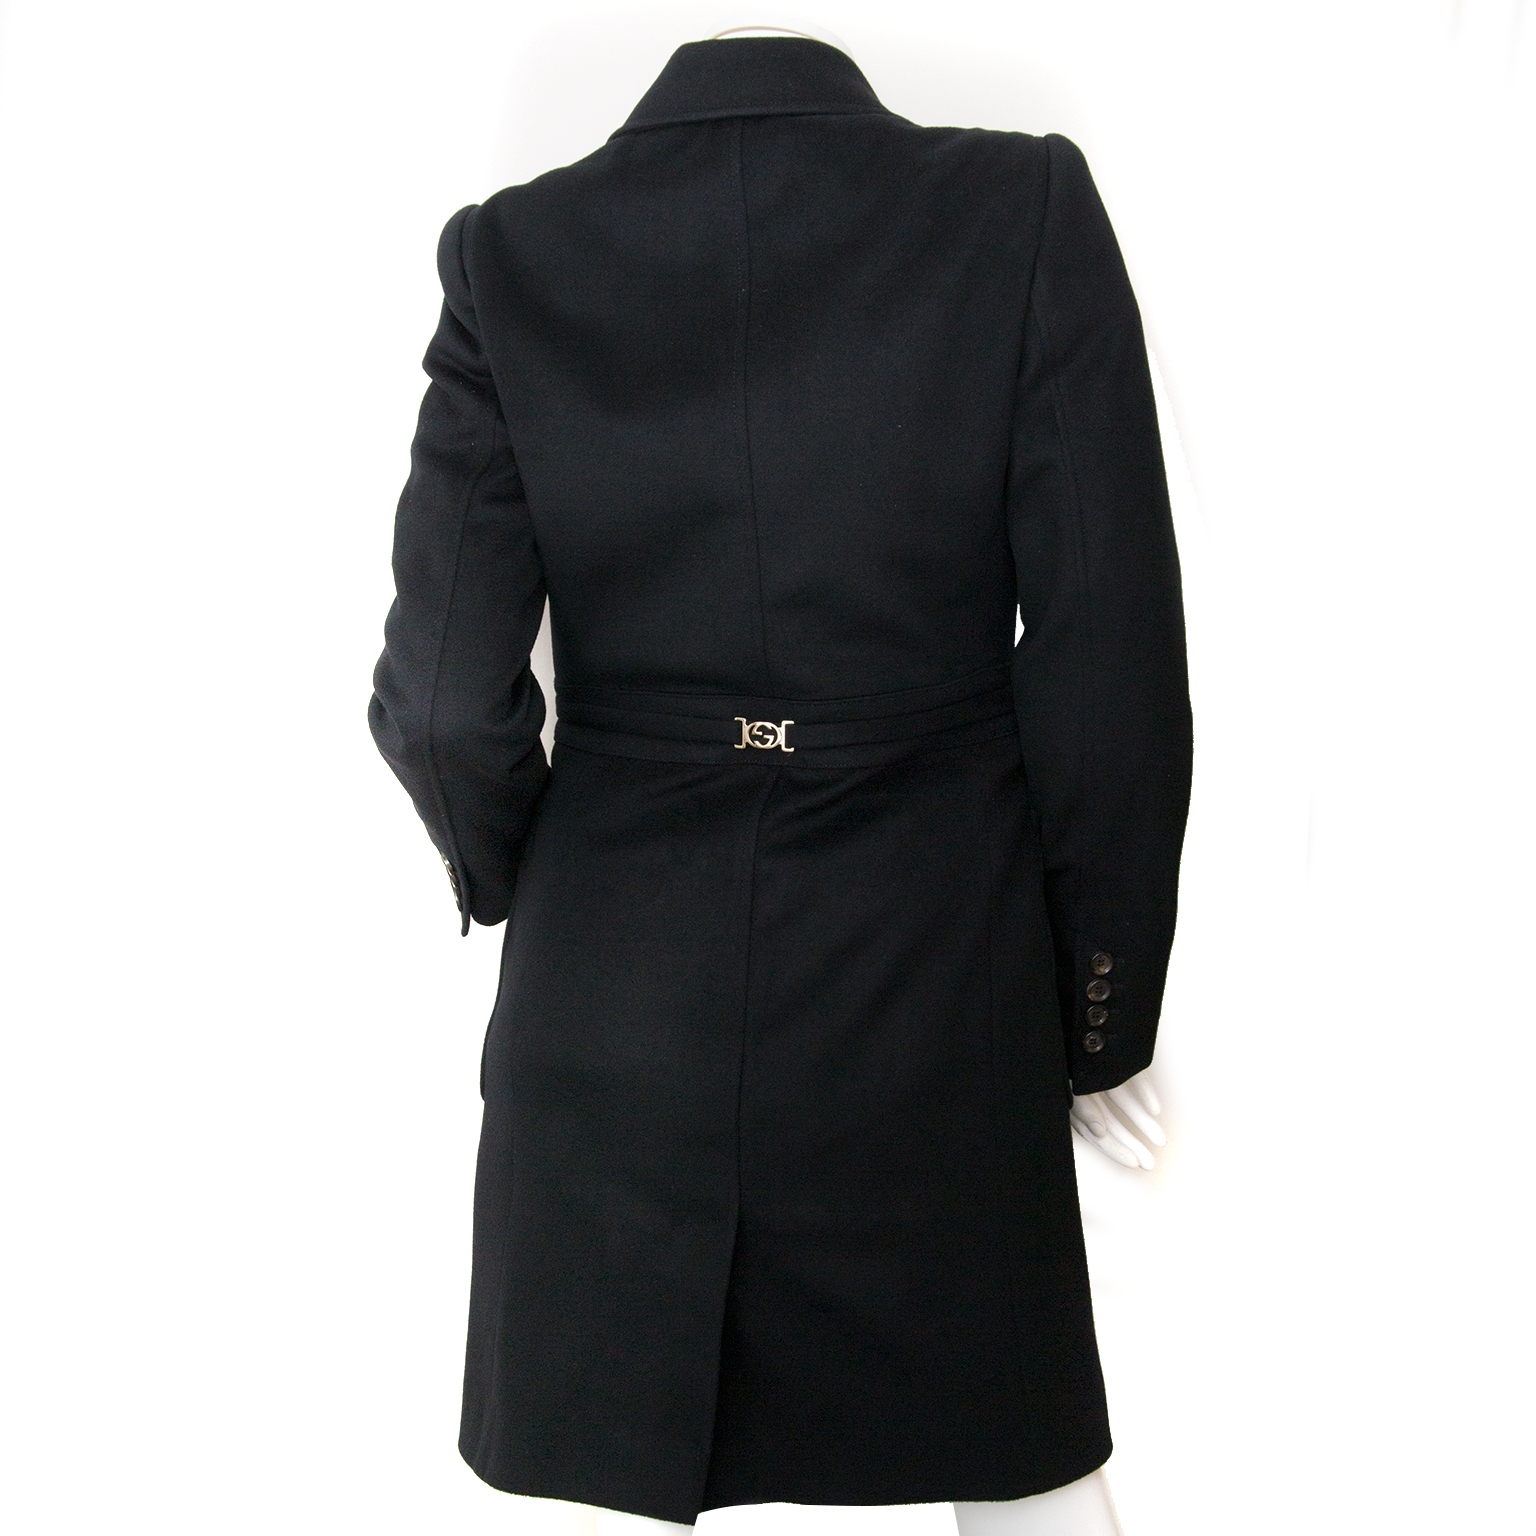 gucci wool black trench coat now for sale at labellov vintage fashion webshop belgium